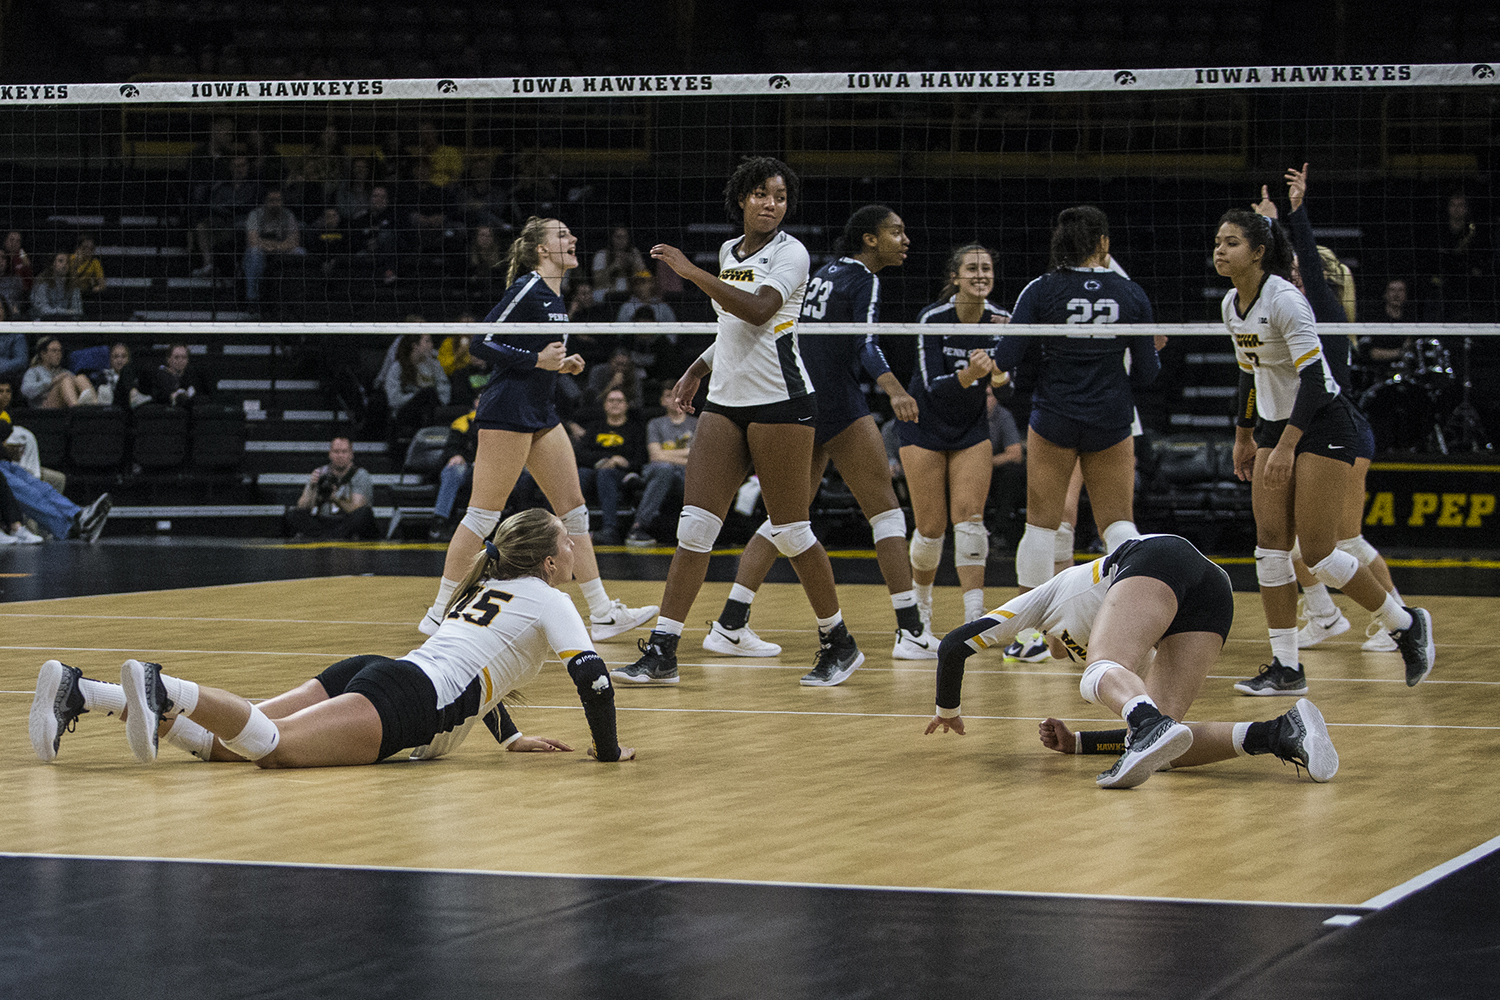 Iowa+players+dive+for+the+ball+during+a+volleyball+match+between+Iowa+and+Penn+State+at+Carver-Hawkeye+Arena+on+Saturday%2C+Nov.+3%2C+2018.+The+Hawkeyes+were+shut+out+by+the+Nittany+Lions%2C+3-0.